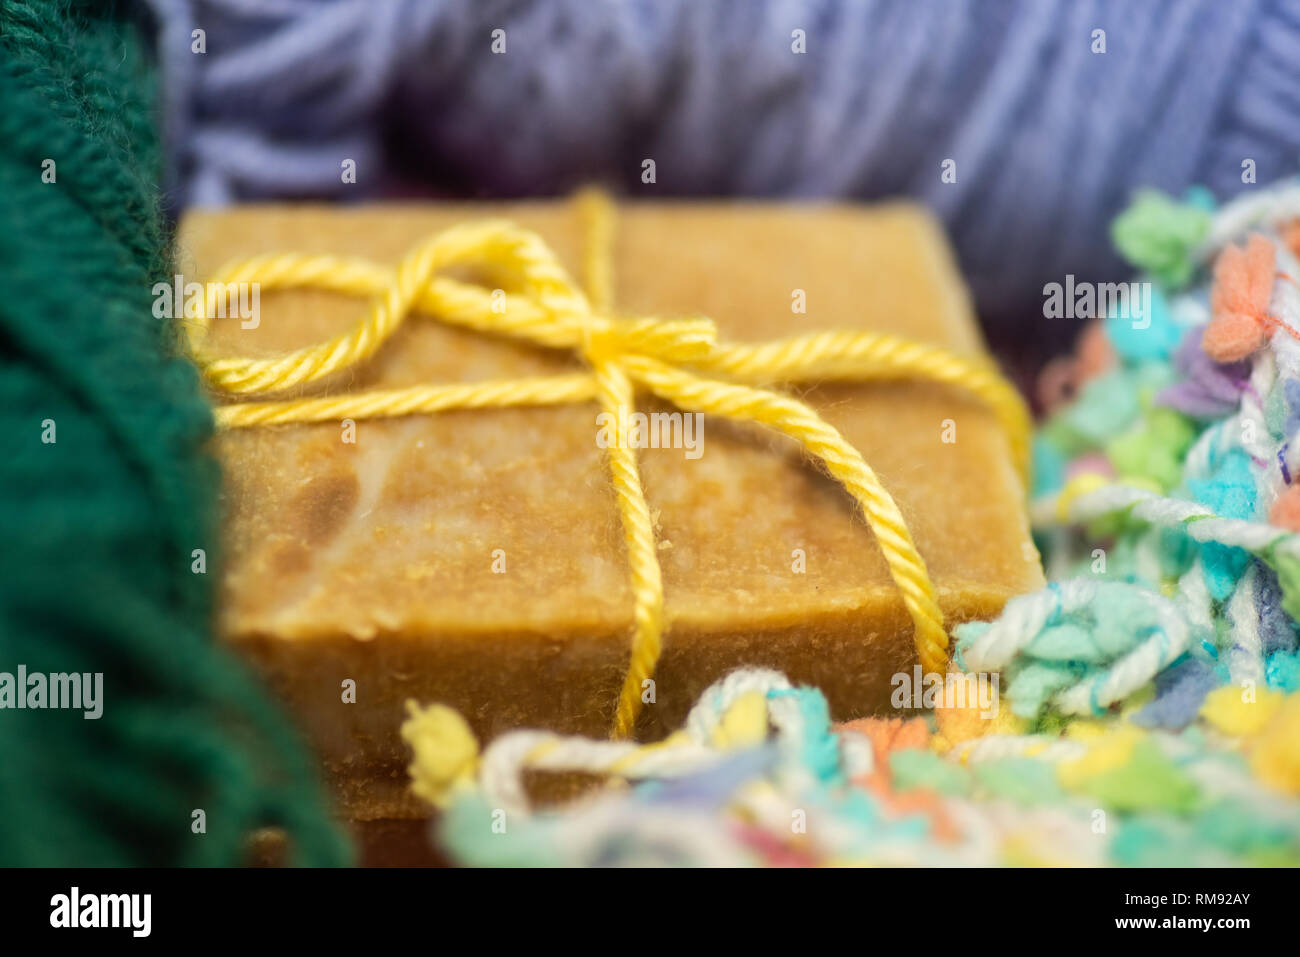 Bars of hand crafted soap with yarn. - Stock Image